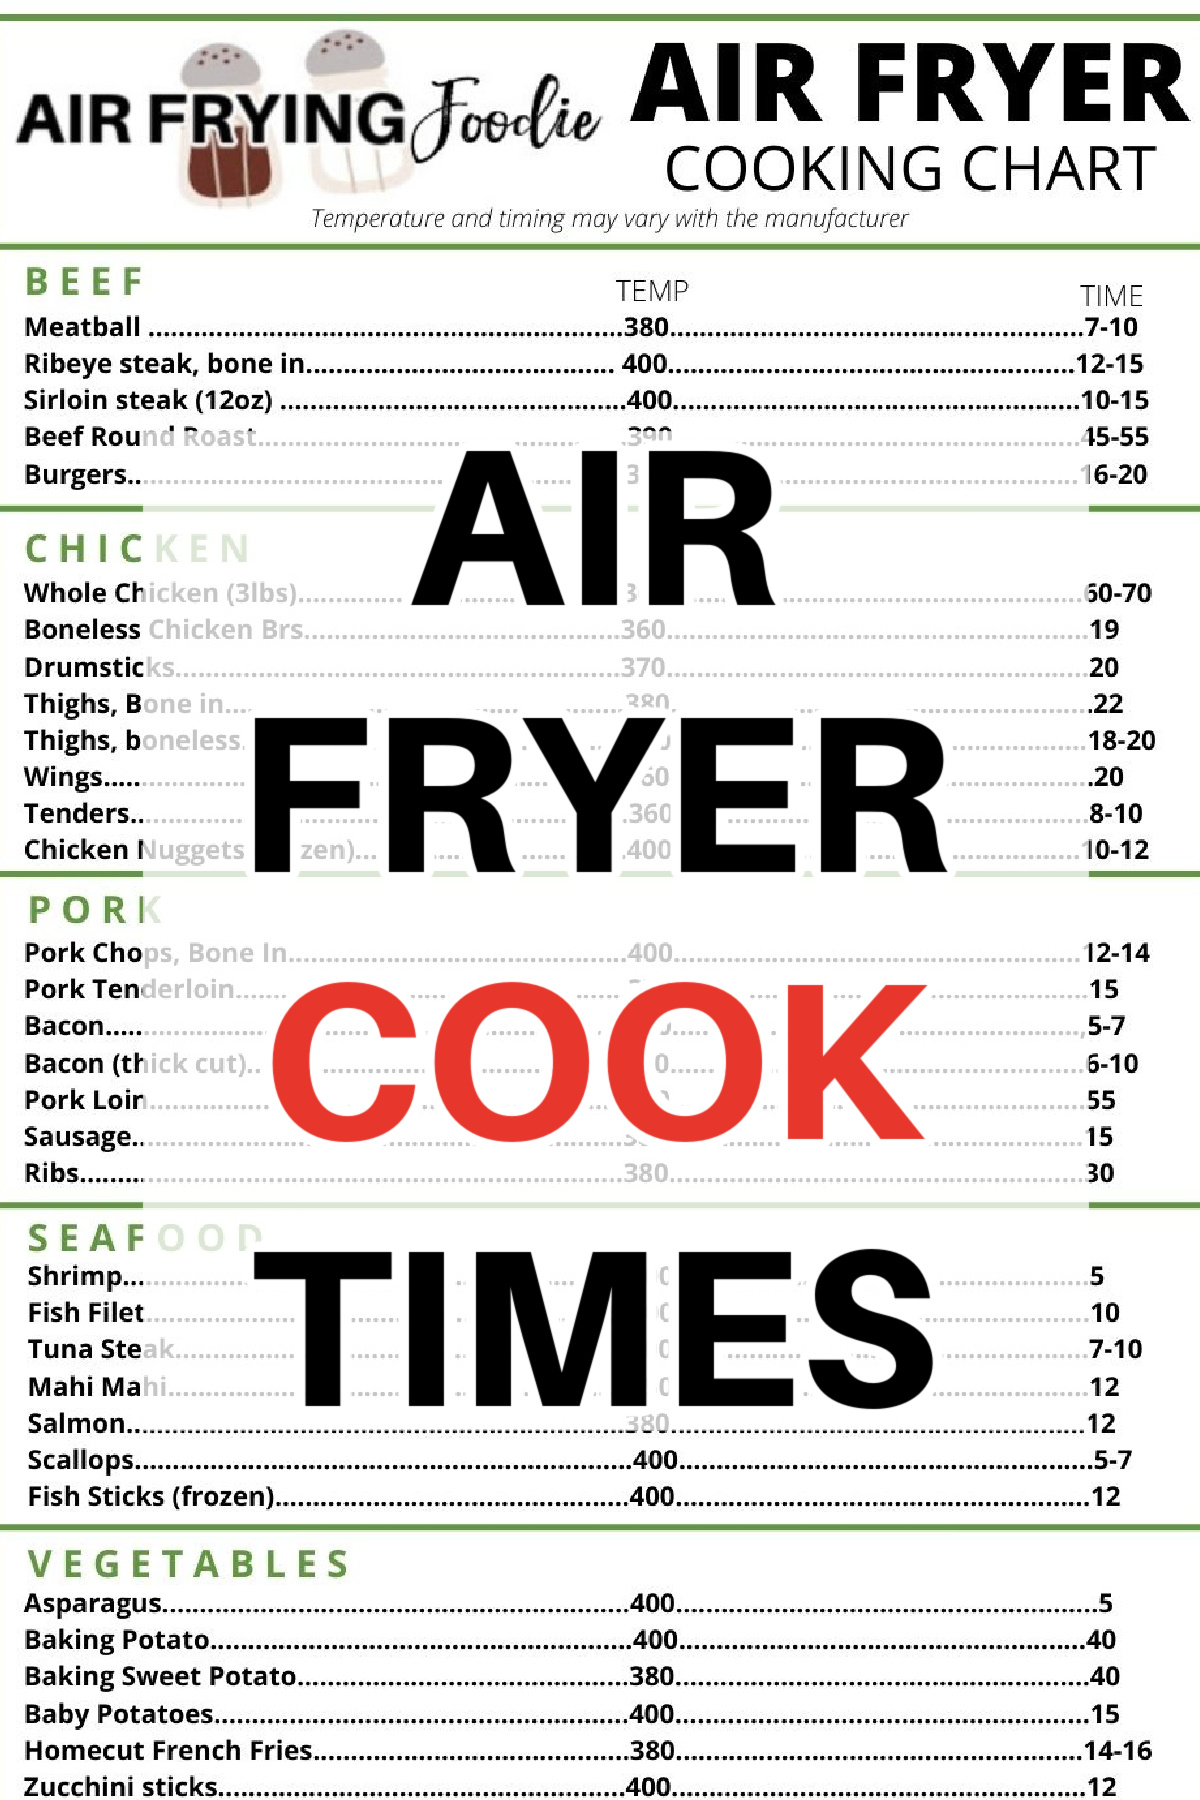 Chart with air fryer cooking times from Air Frying Foodie.